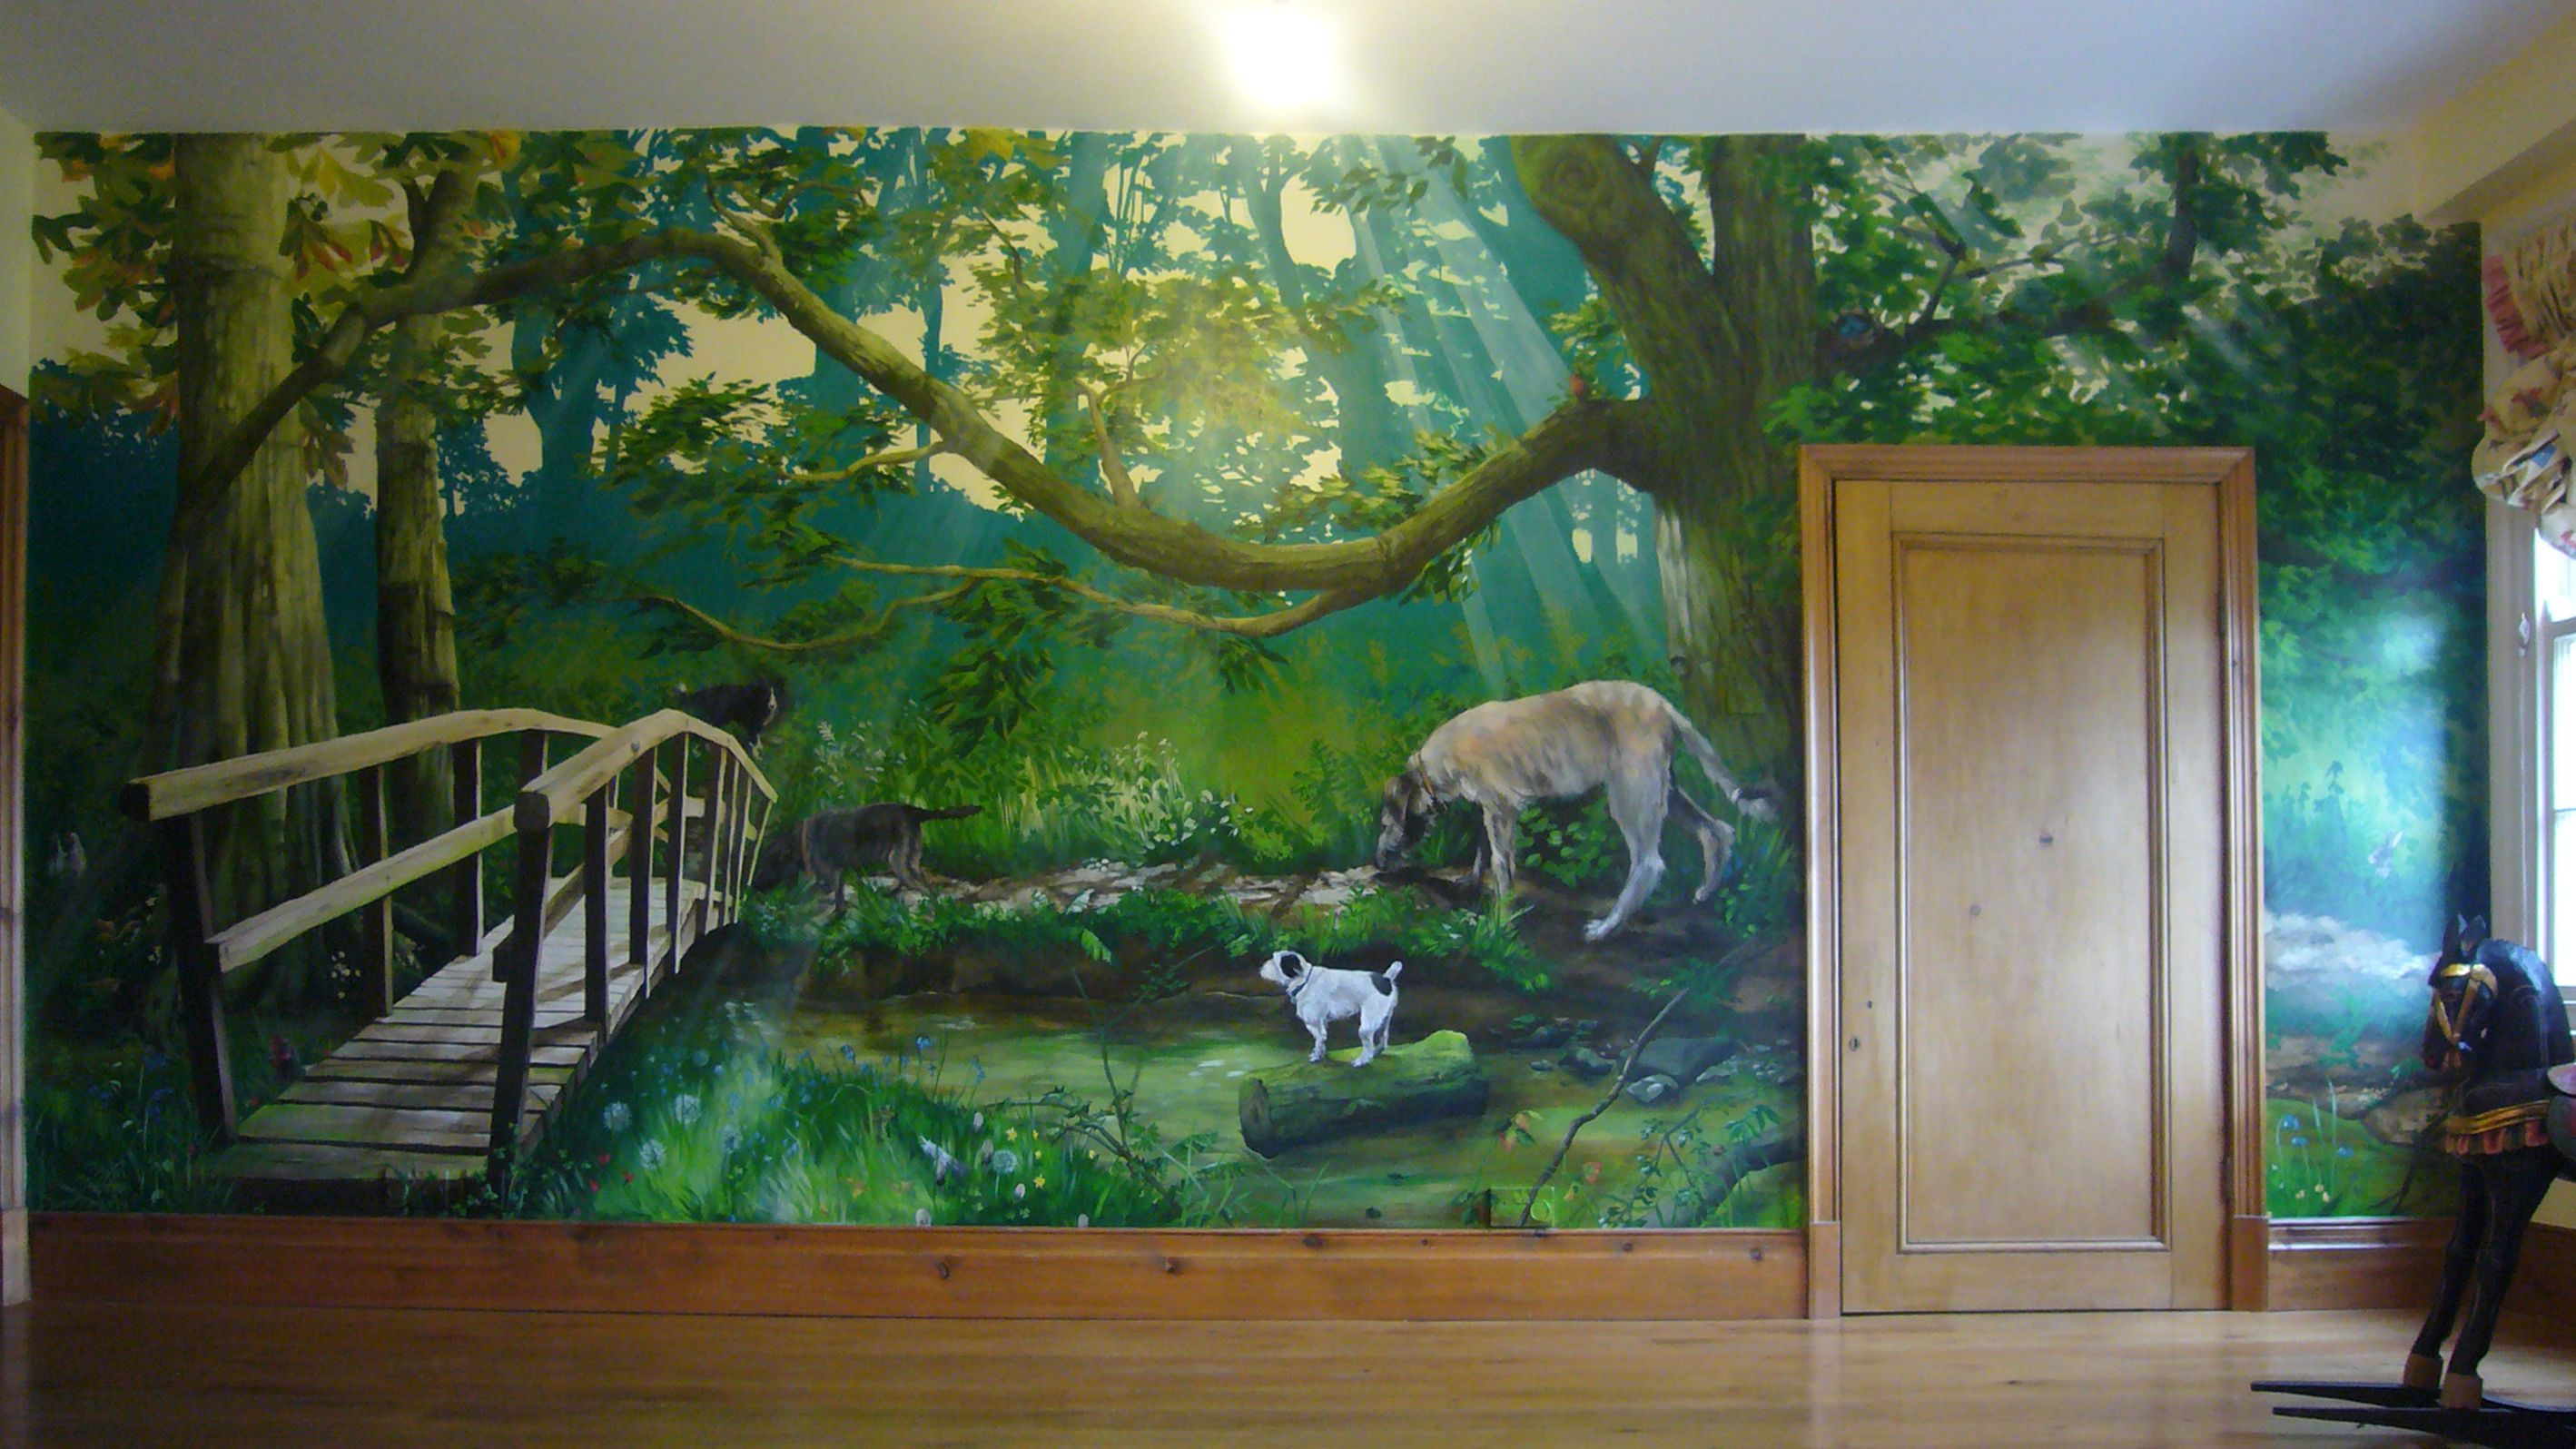 wall murals | Wall Mural Ideas: Nature by homecaprice.com ...